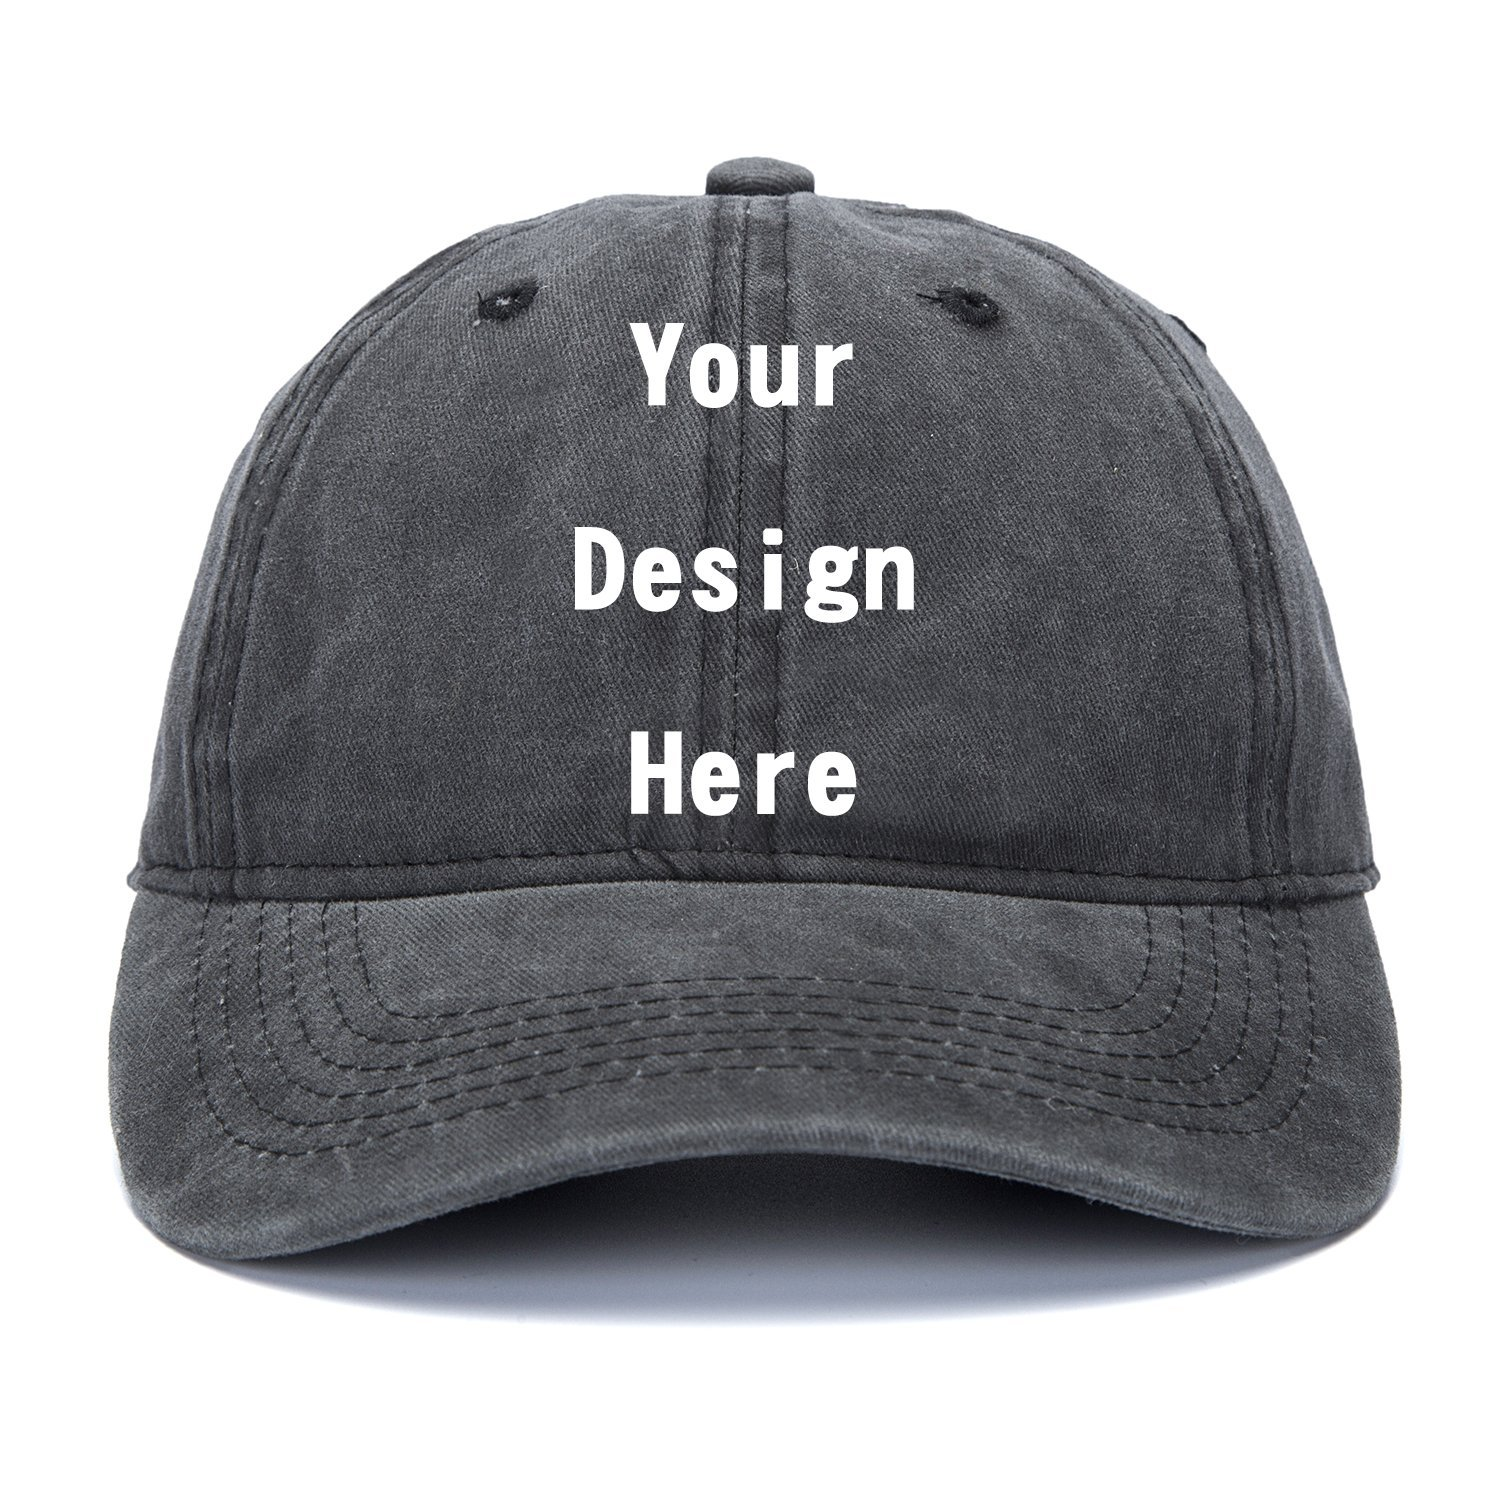 0f899f6d592 RR DDXU Customize Your Own Design Text